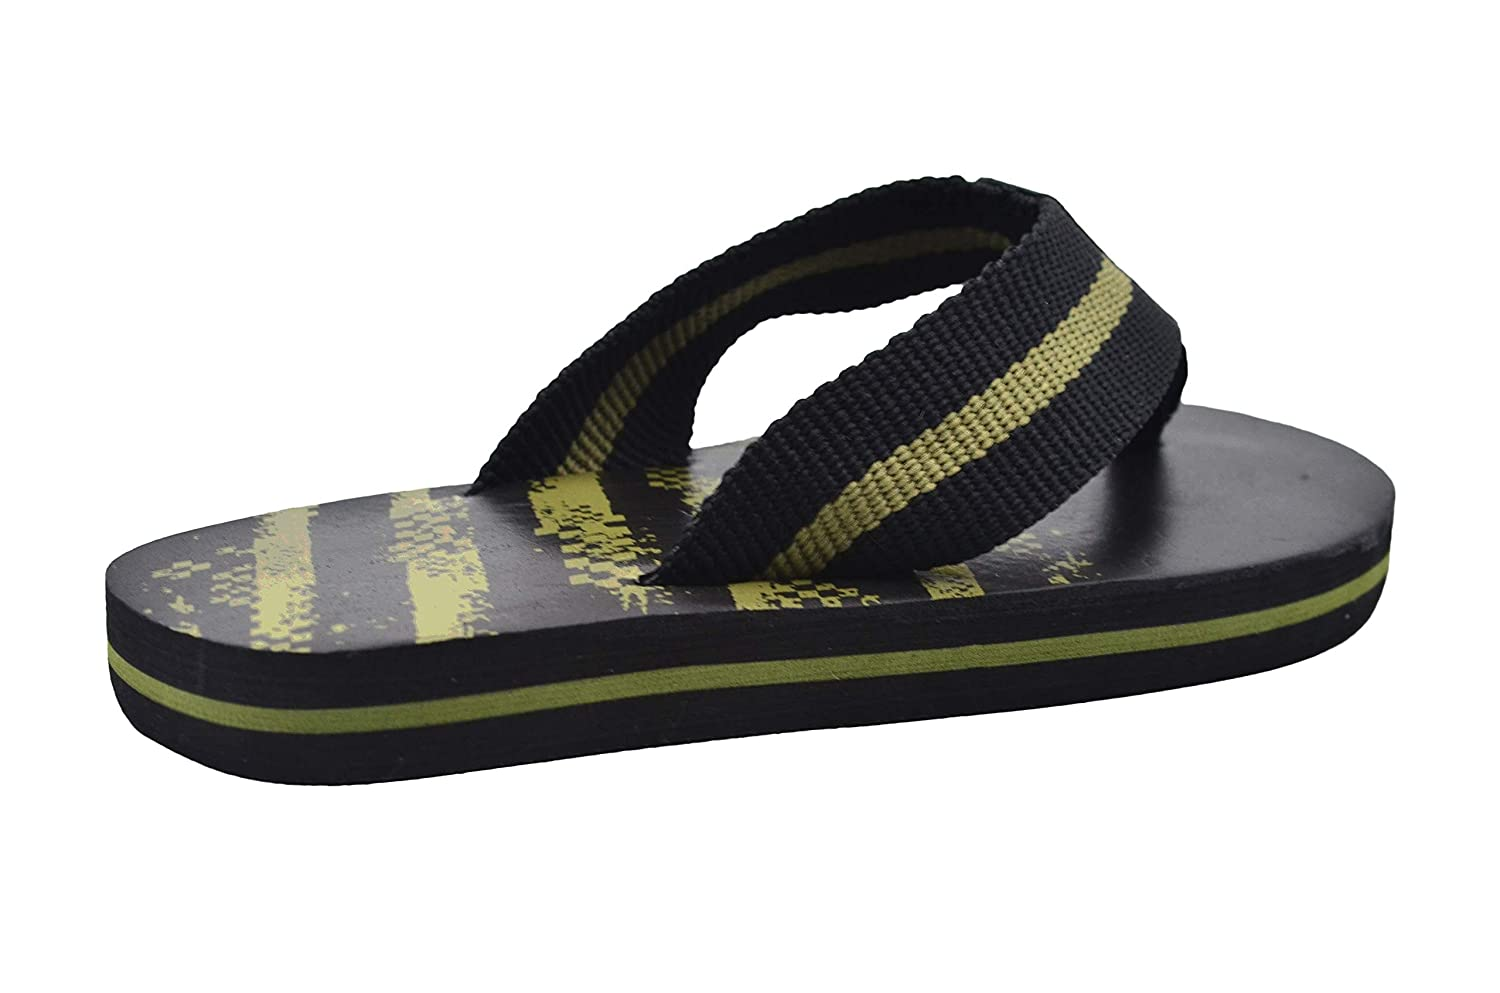 Revo Boys Flip Flop Little Kid Striped Thong Sandal with Printed Footbed